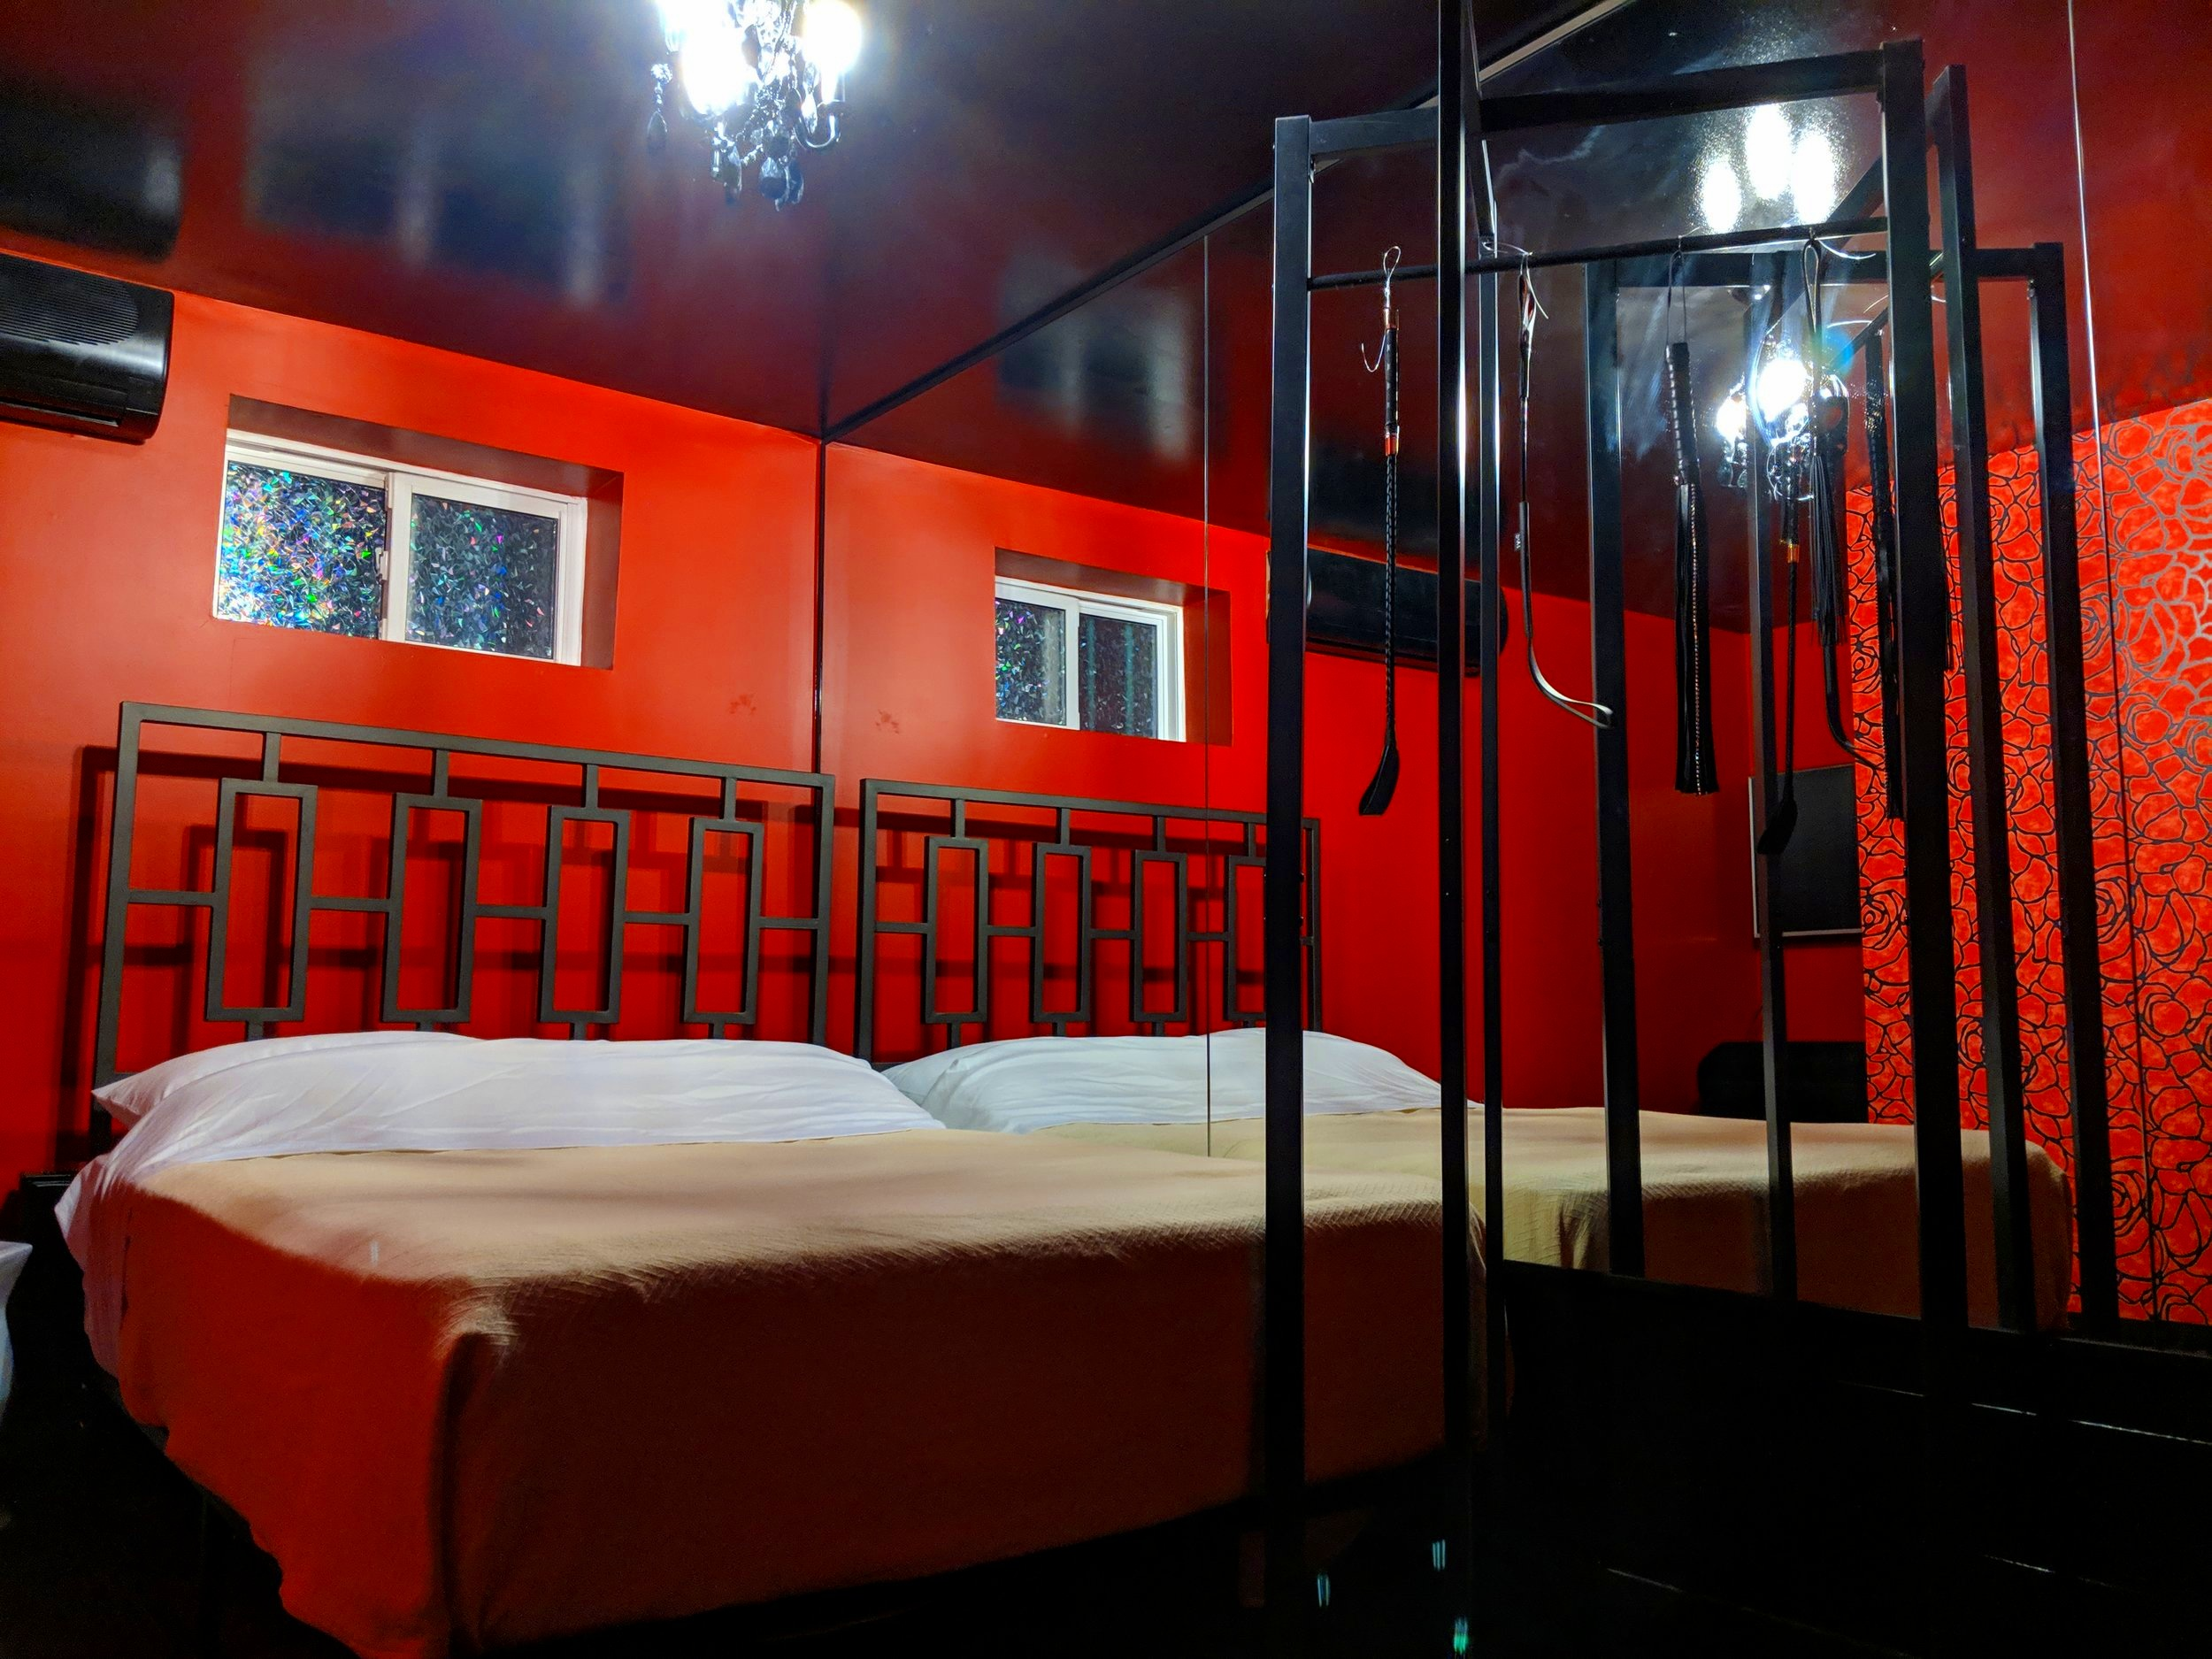 red room - The Red Room ripens those who will express passion.Thrive within a garden of excitement in this oasis of fruition.Express growth, whether you will do it with our leather accessories or your own imagination.